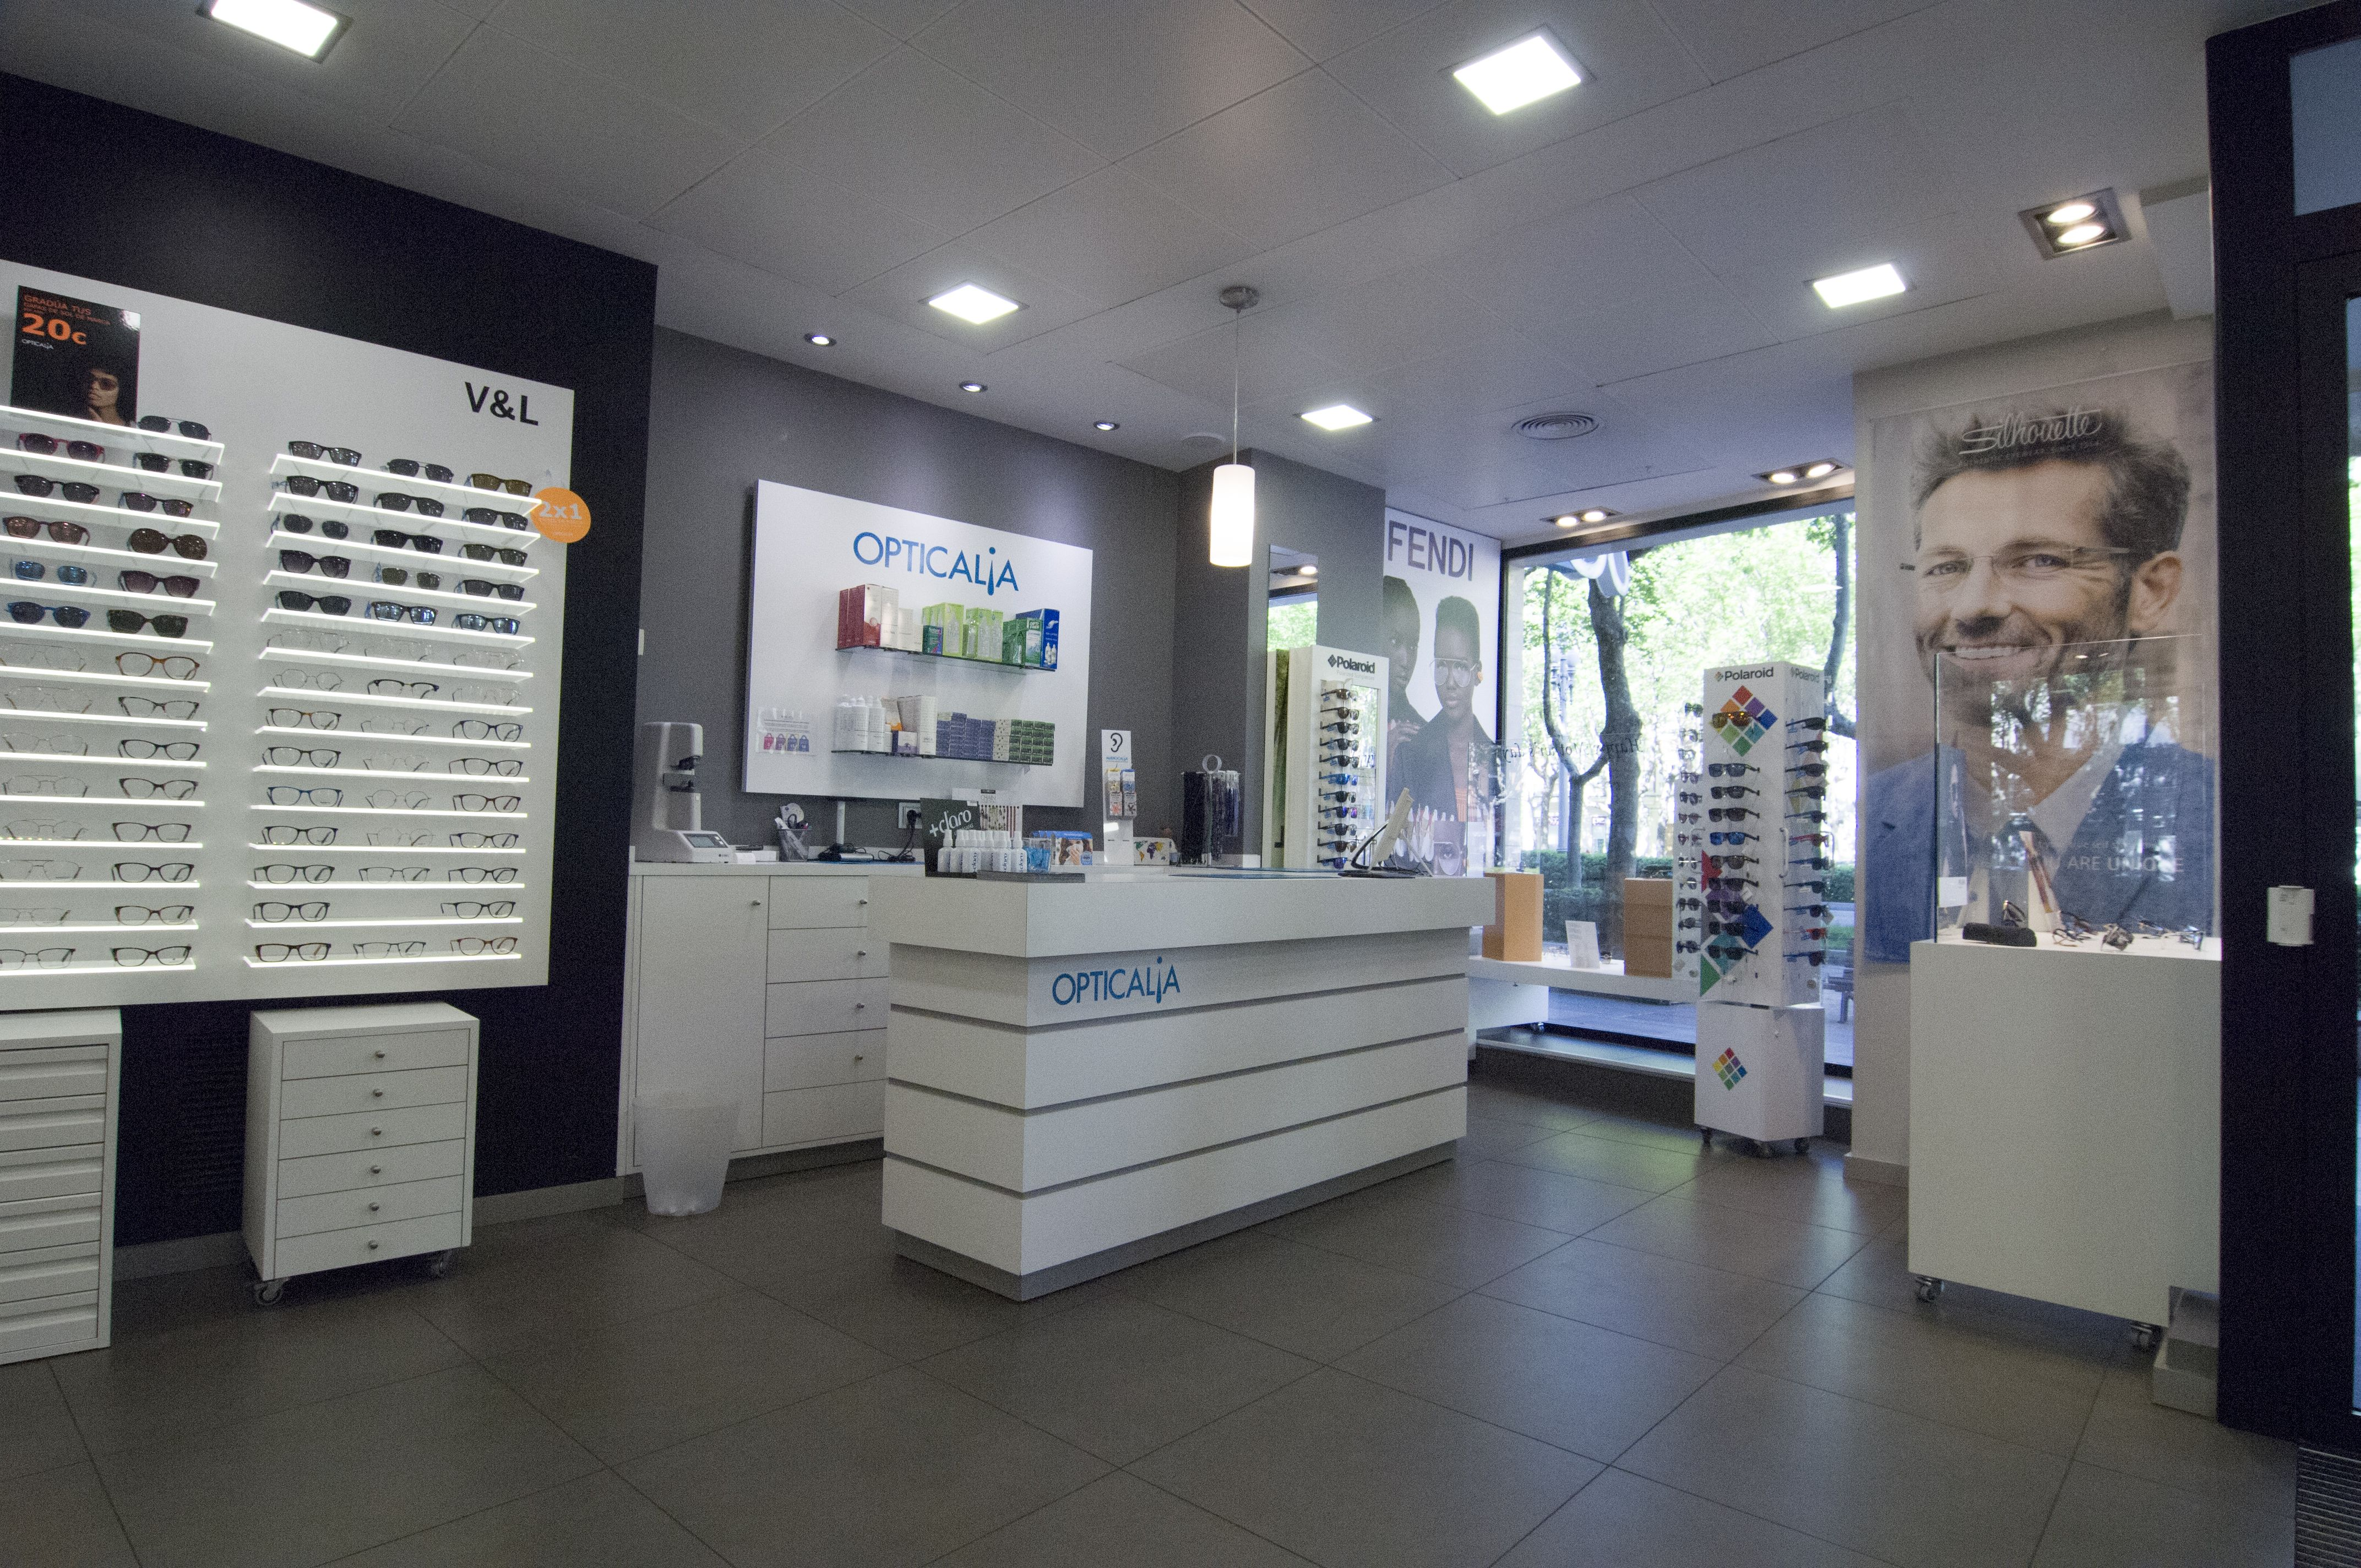 Opticalia Zorrilla